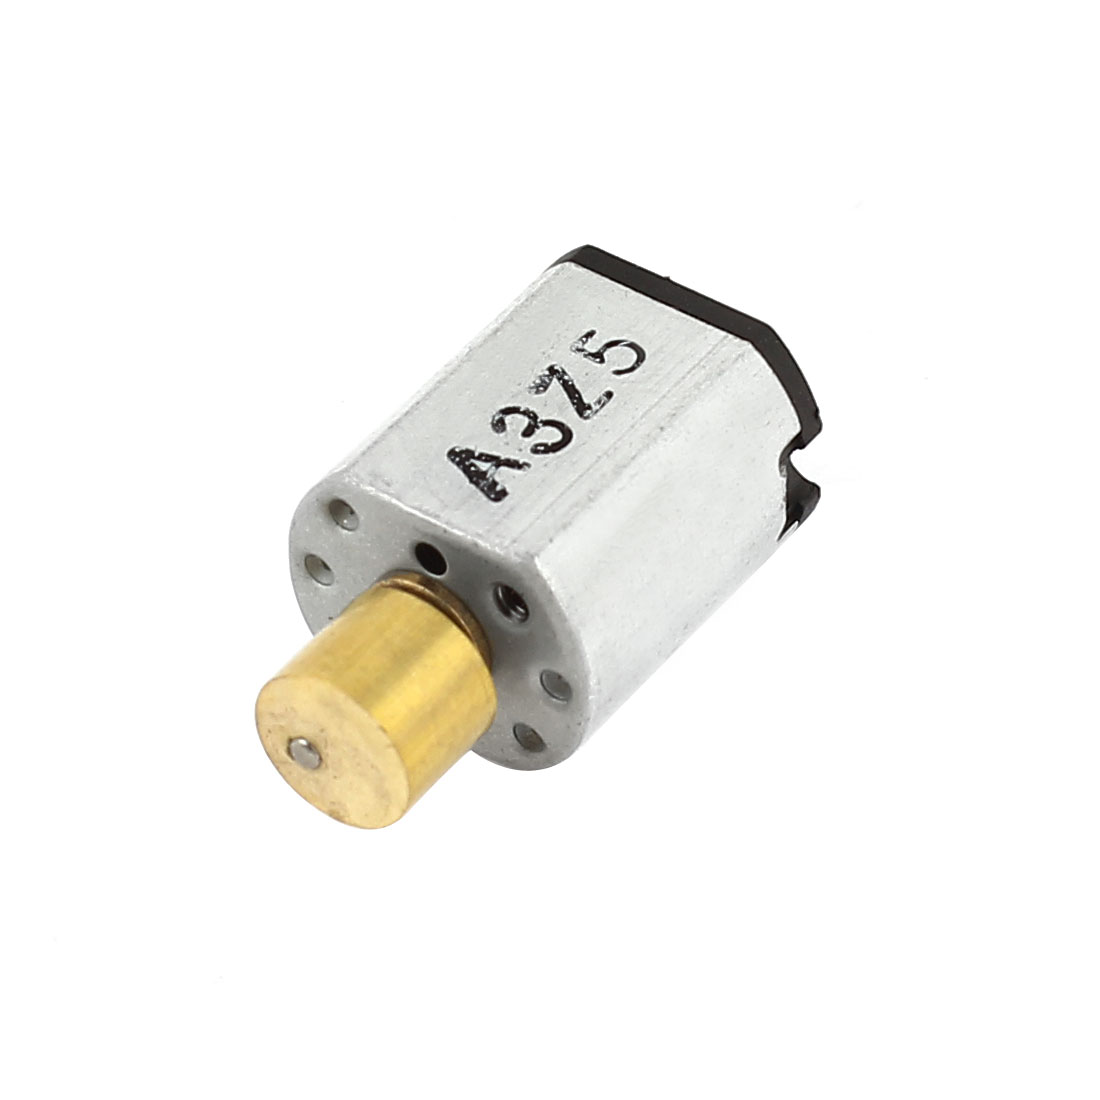 DC 3V 0.05A 12000RPM Speed Micro Motor for RC Model Toys